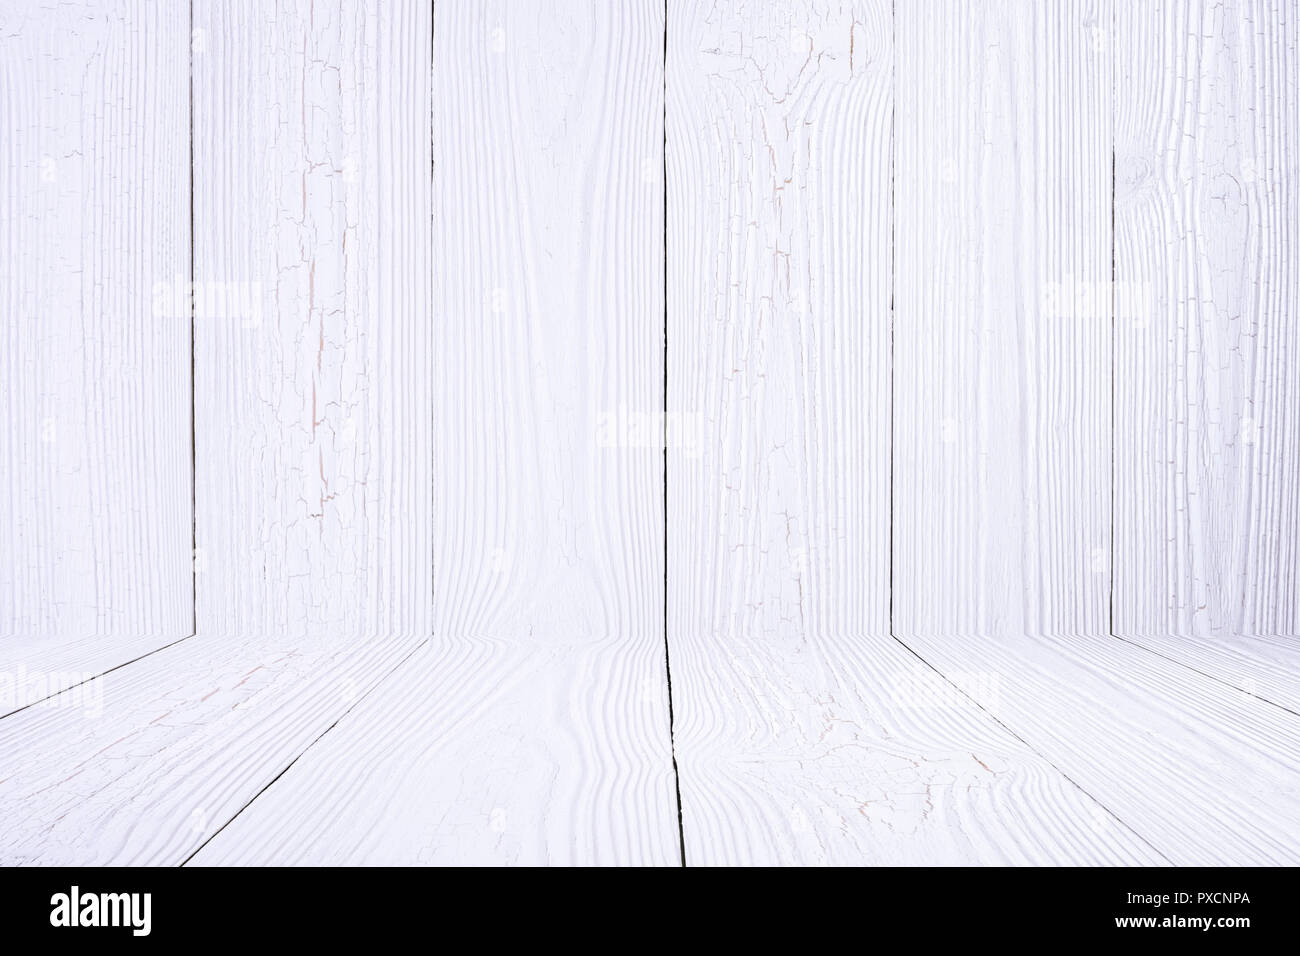 white wood background wall and floor wooden texture surface